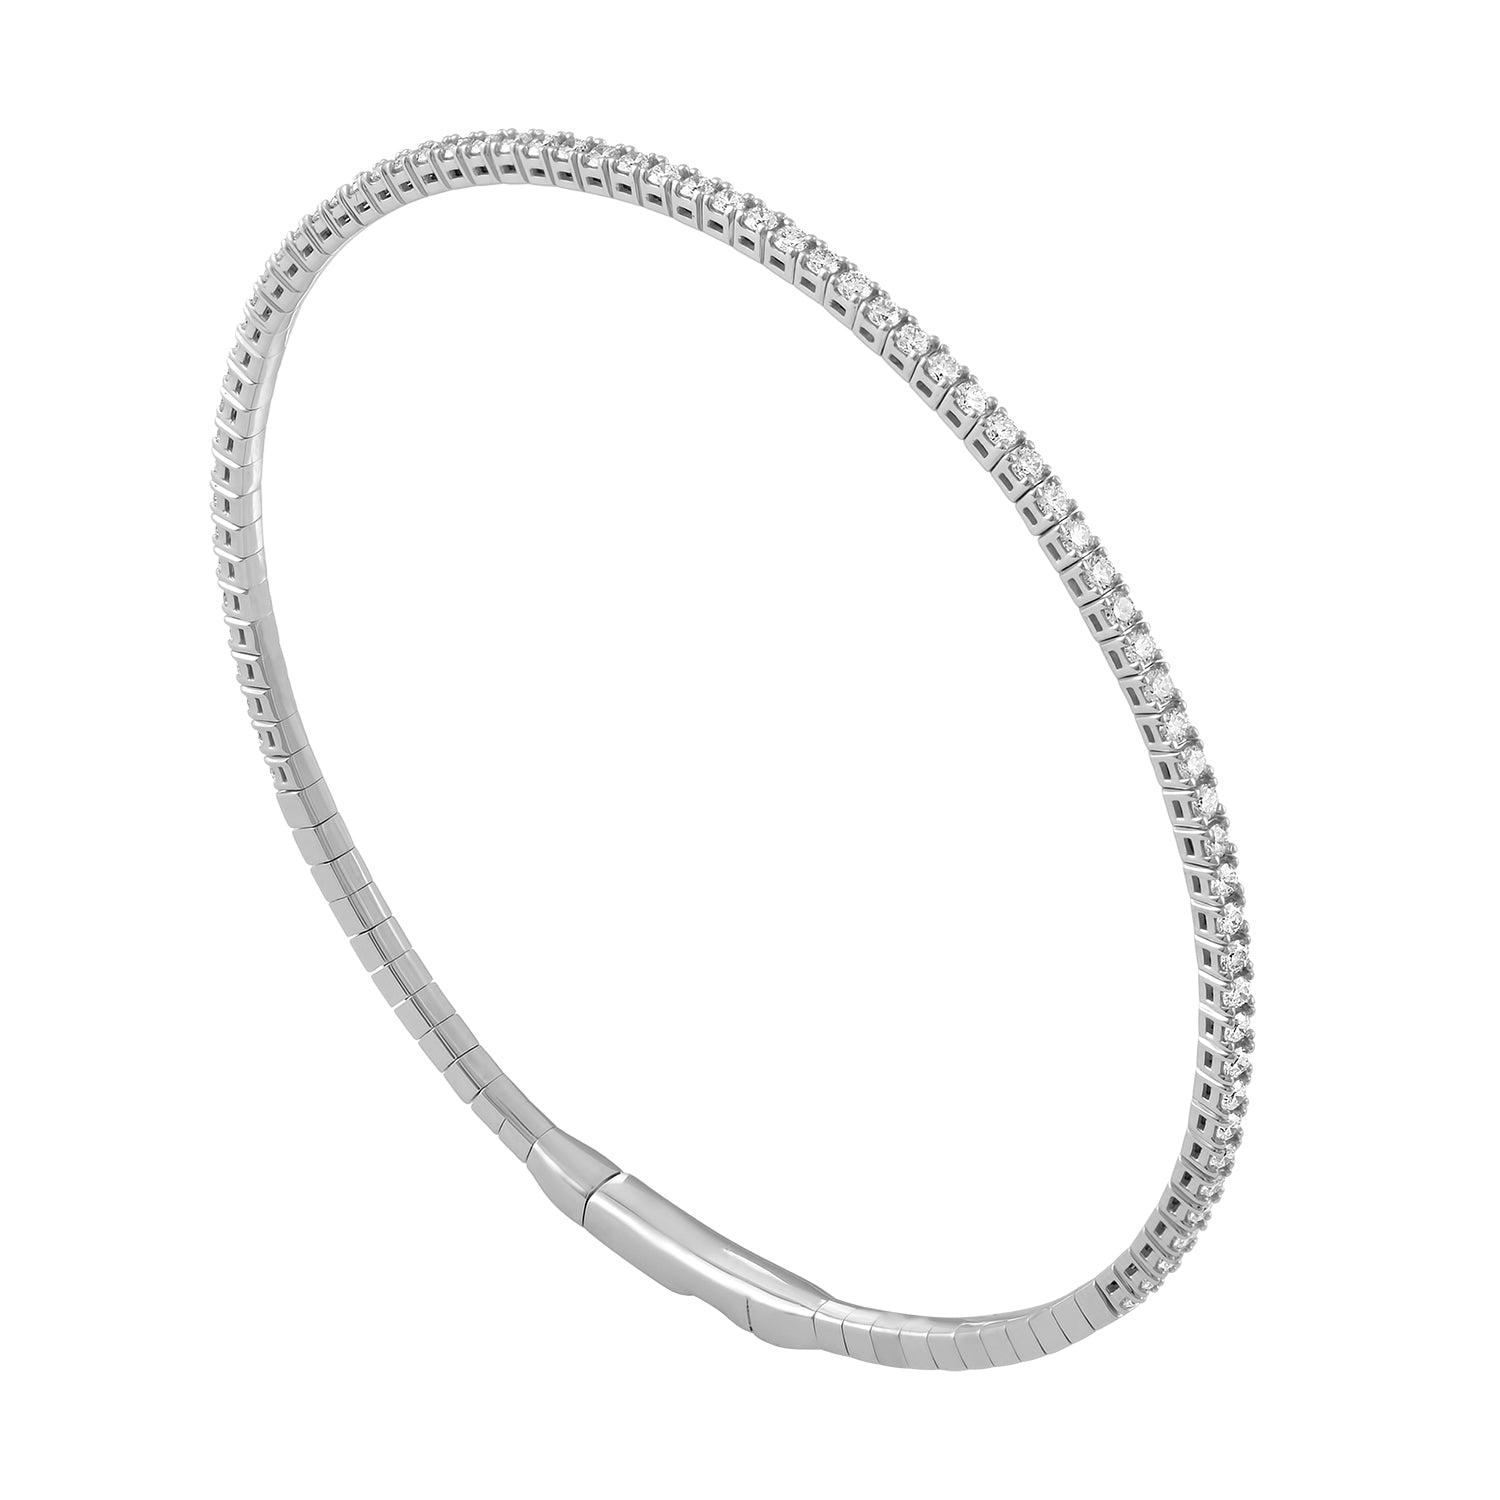 Flexible Diamond Bangle in White Gold